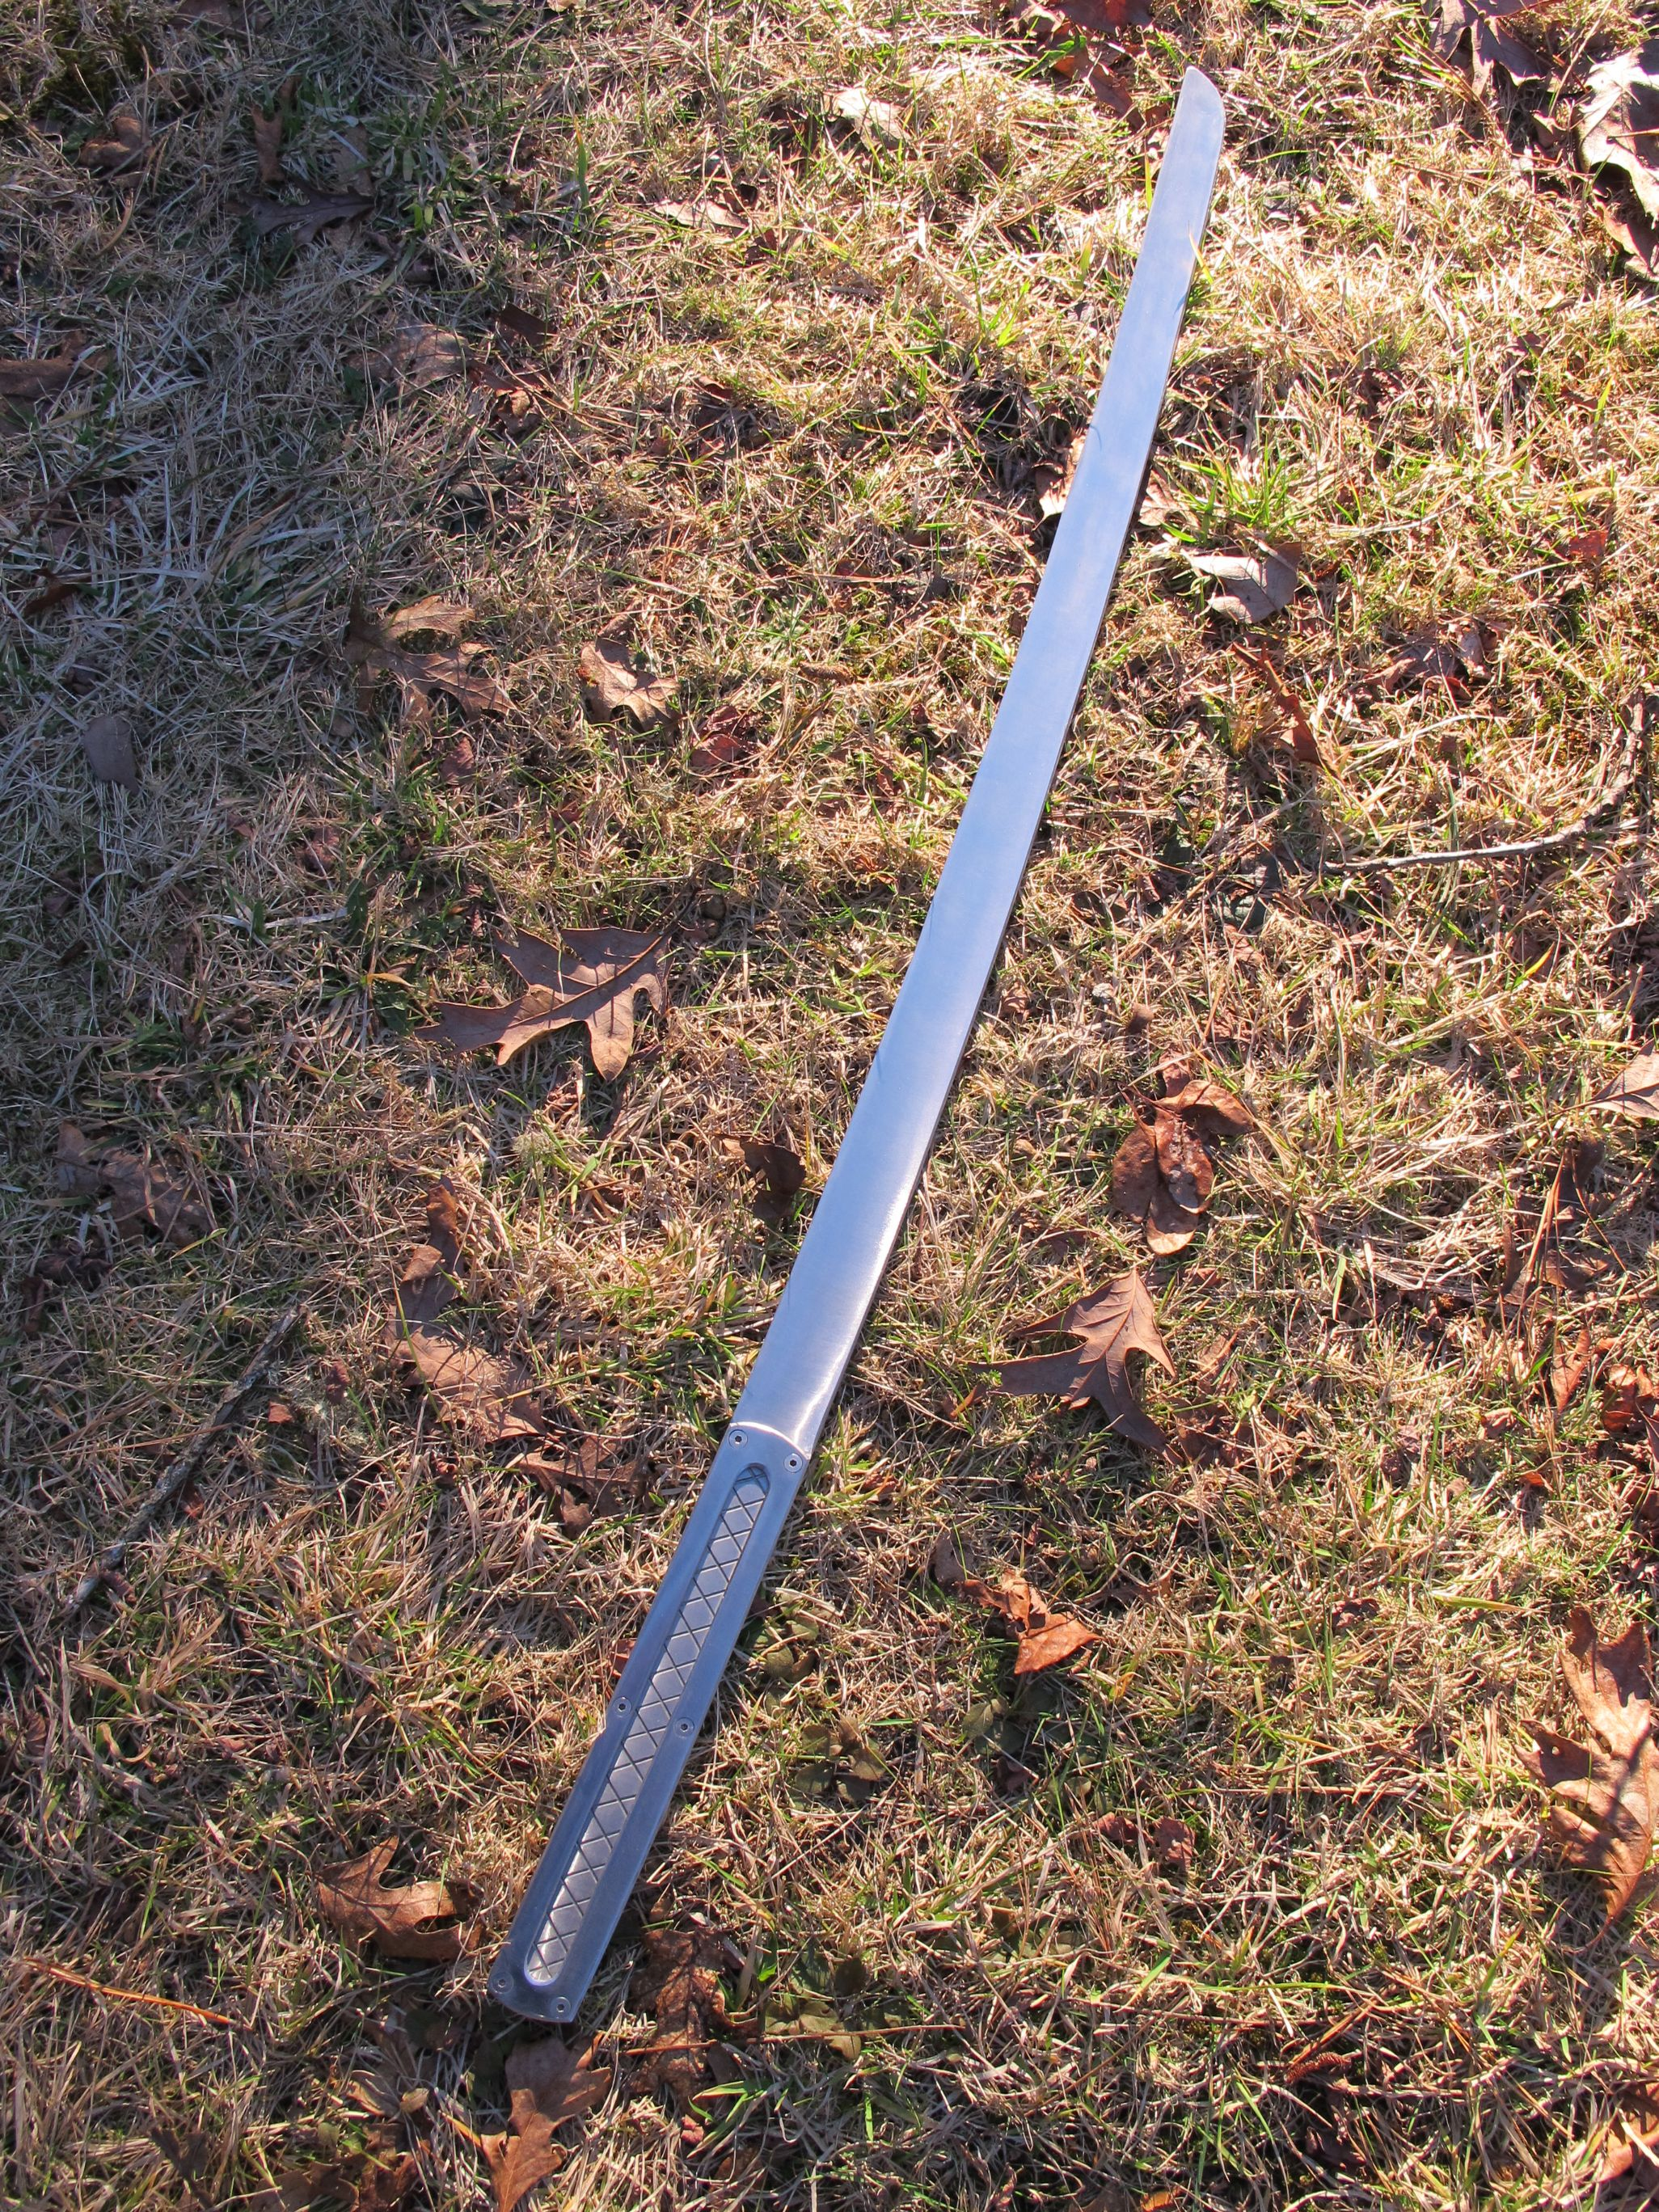 Meet The Guy Who Makes Insanely Huge and Heavy Swords Up To 6 Feet Long